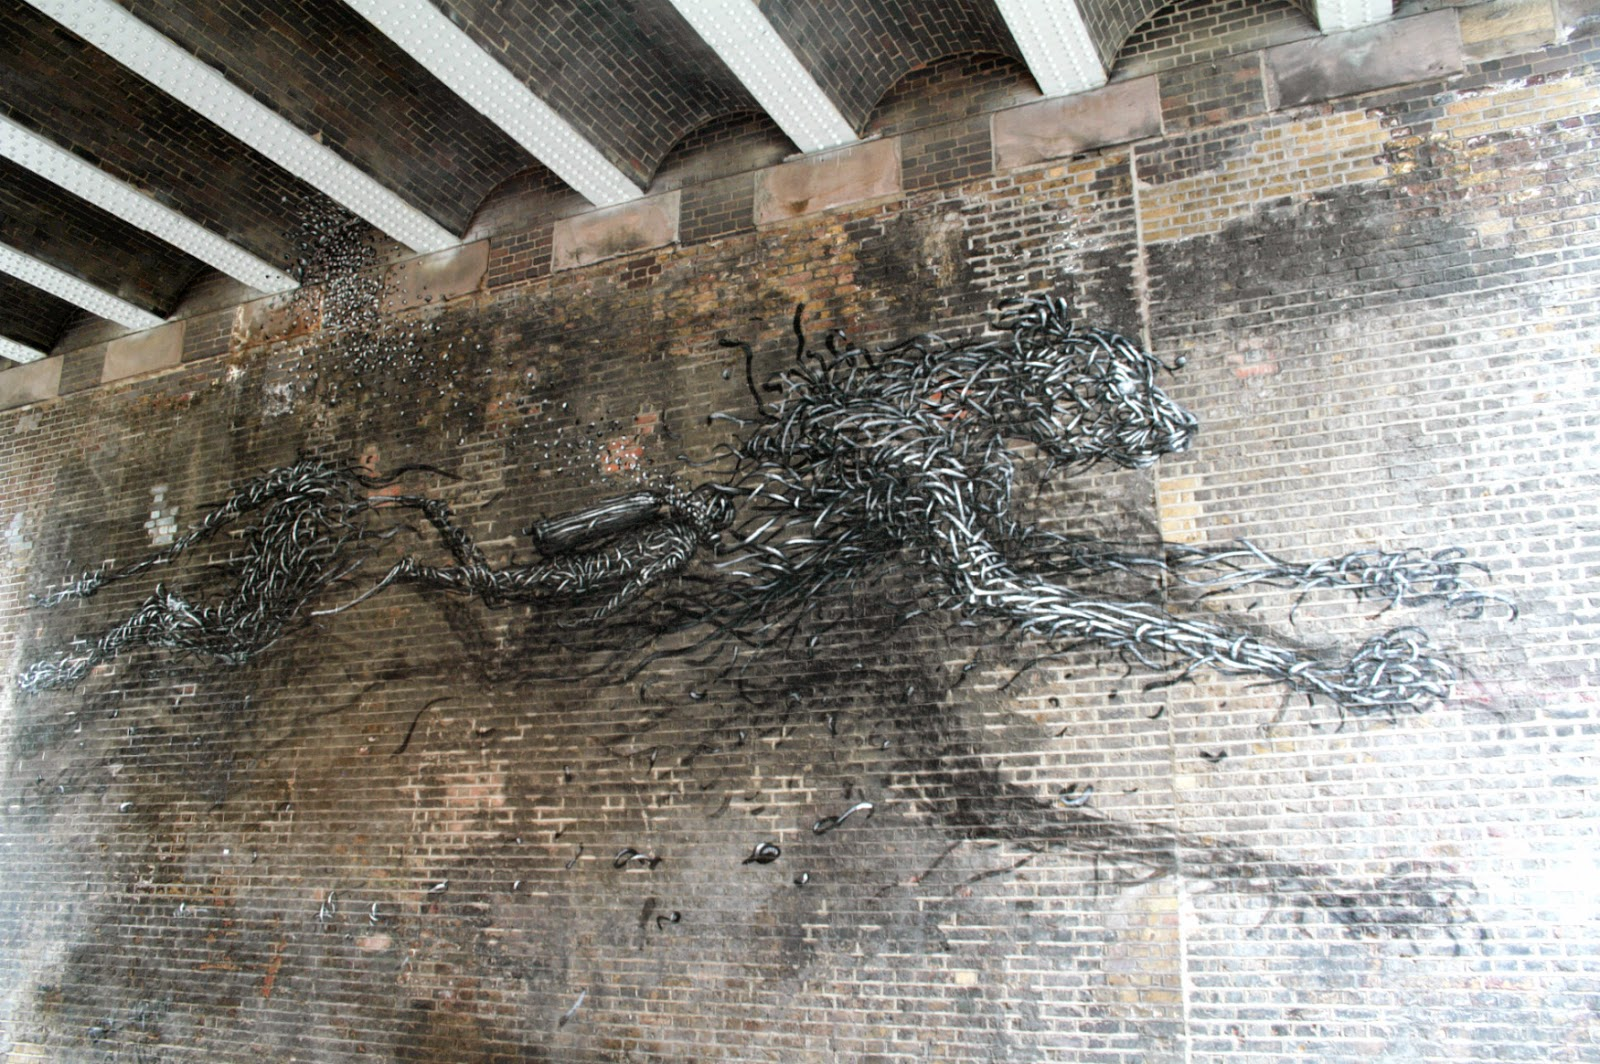 Tucked under an arch in Shoreditch you can find a beautiful mural by Chinese street artist DALeast